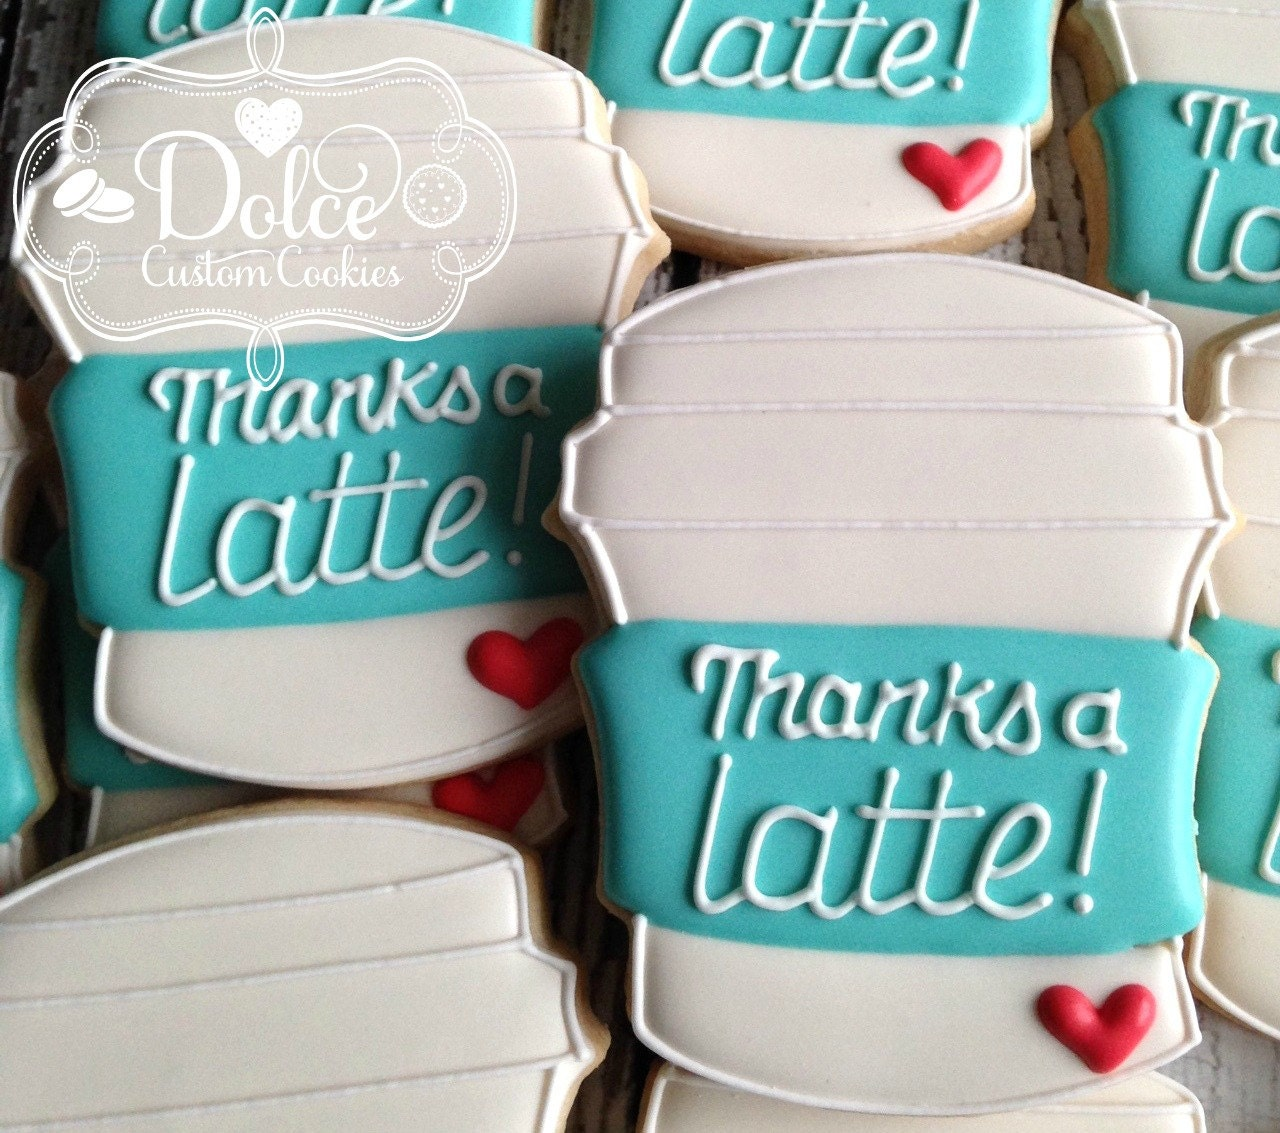 Thank You Thanks A Latte Cookies Teacher Appreciation Back To